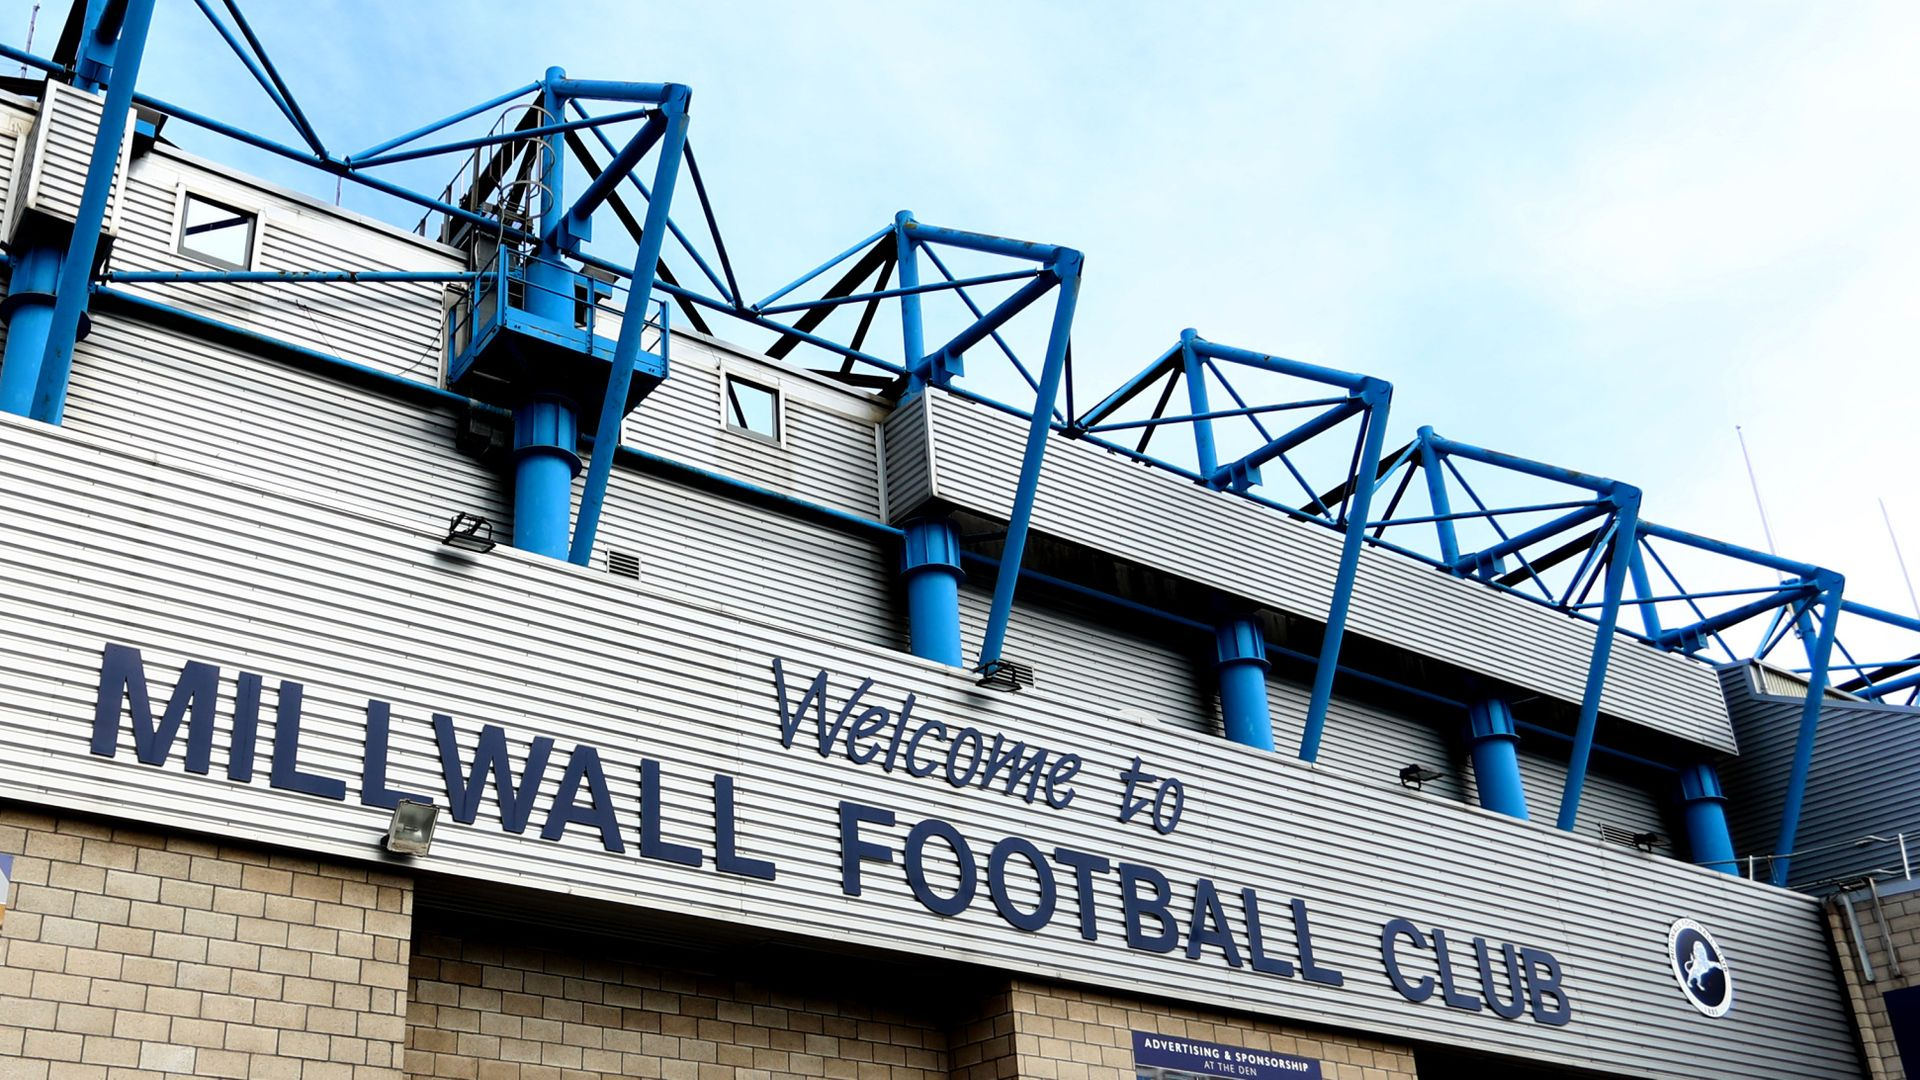 Millwall's next two games postponed after Covid-19 outbreak